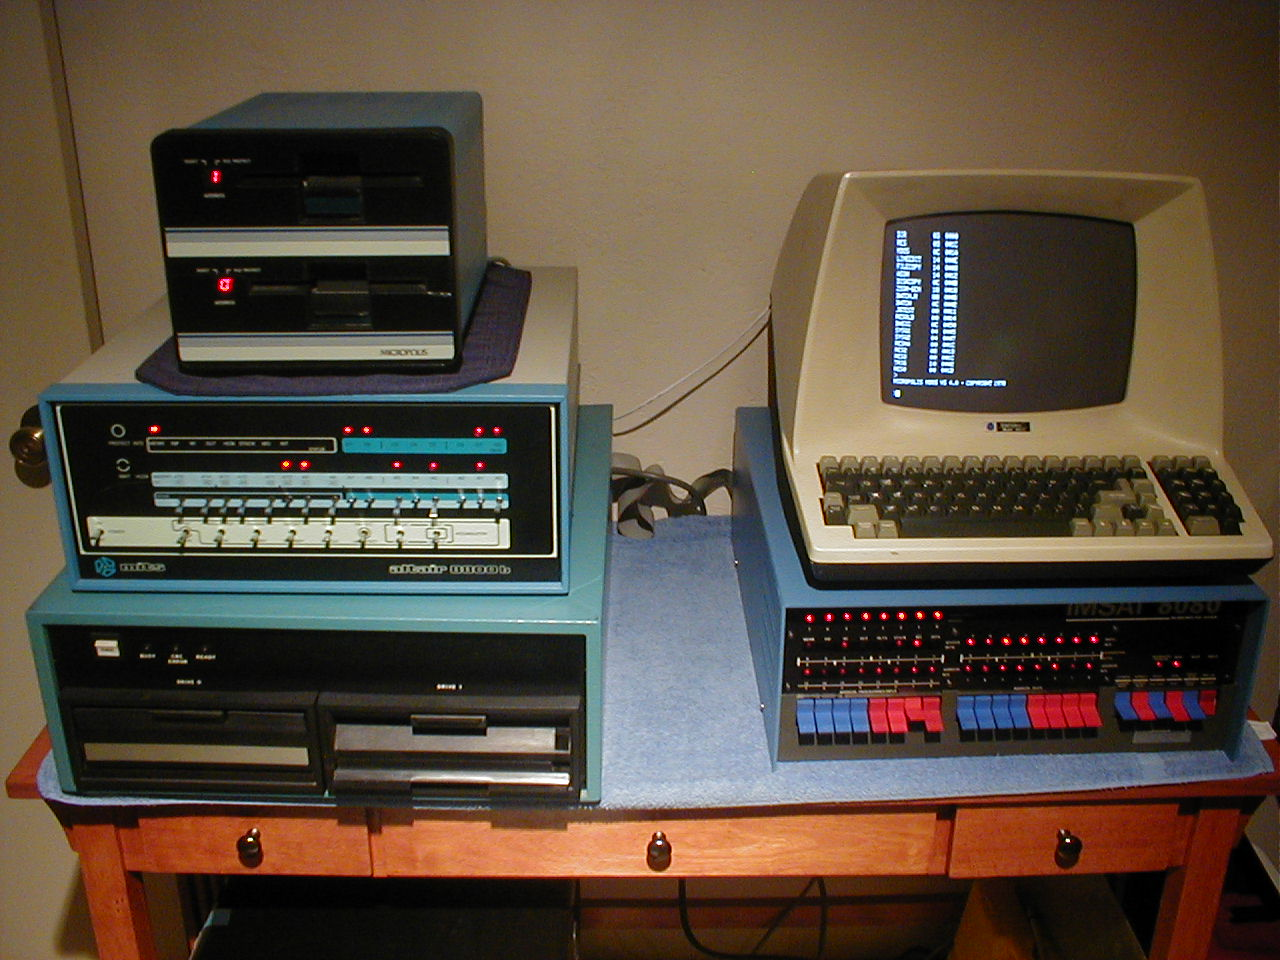 microcomputers A minicomputer, or colloquially mini, is a class of smaller computers that was developed in the mid-1960s and sold for much less than mainframe and mid-size computers from ibm and its direct competitors.